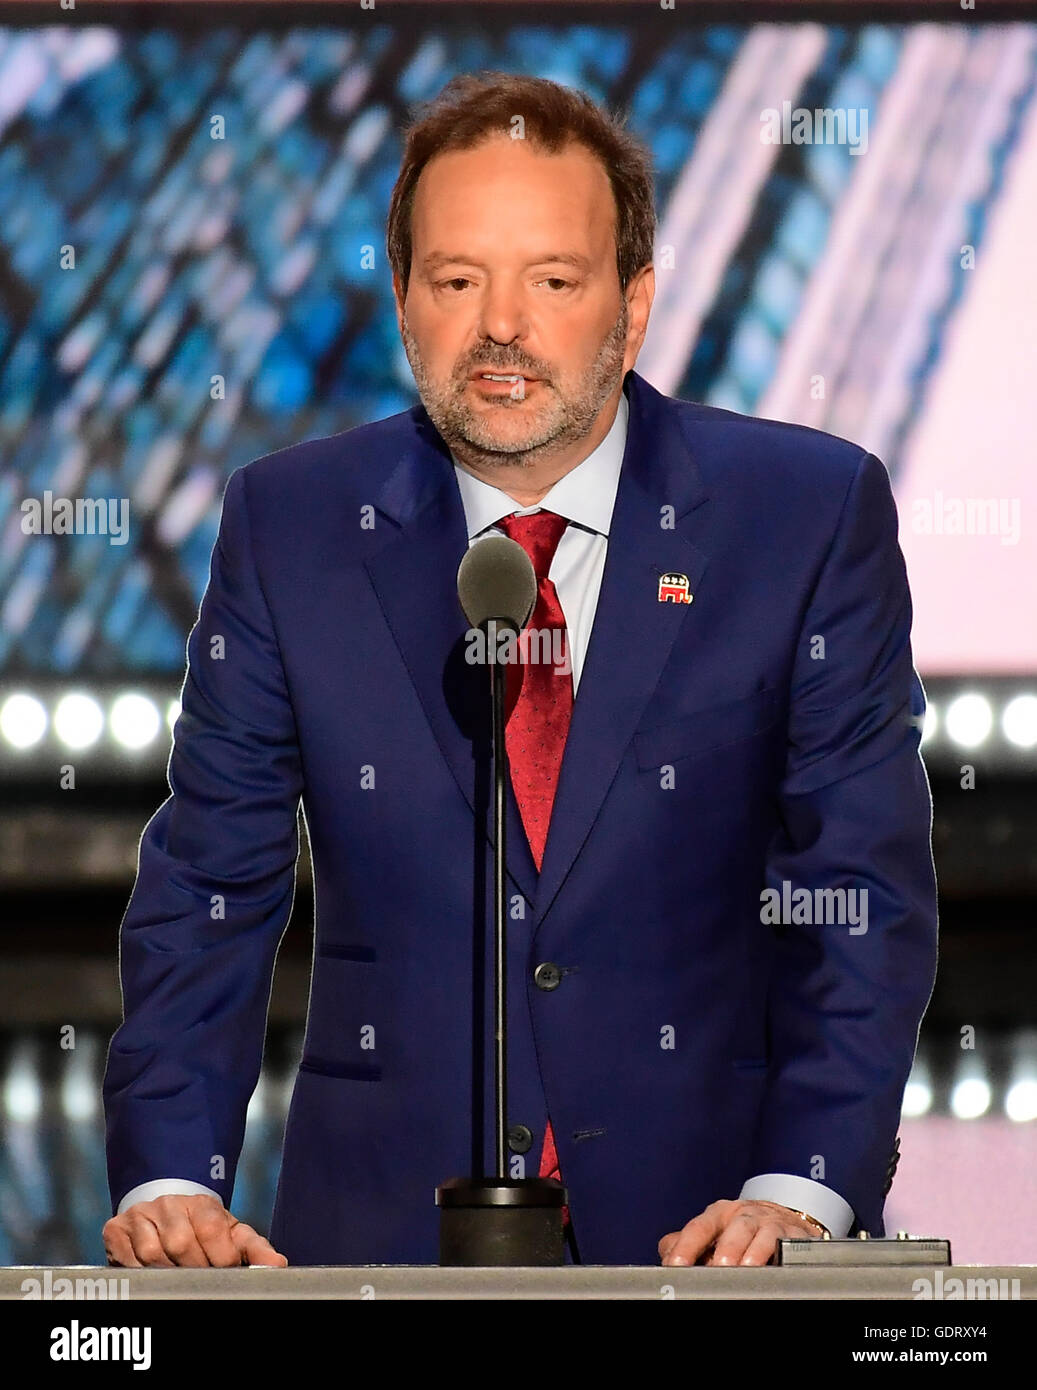 Cleveland, USA. 19th July, 2016. Businessman Andy Wist of Brooklyn, New York makes remarks at the 2016 Republican - Stock Image